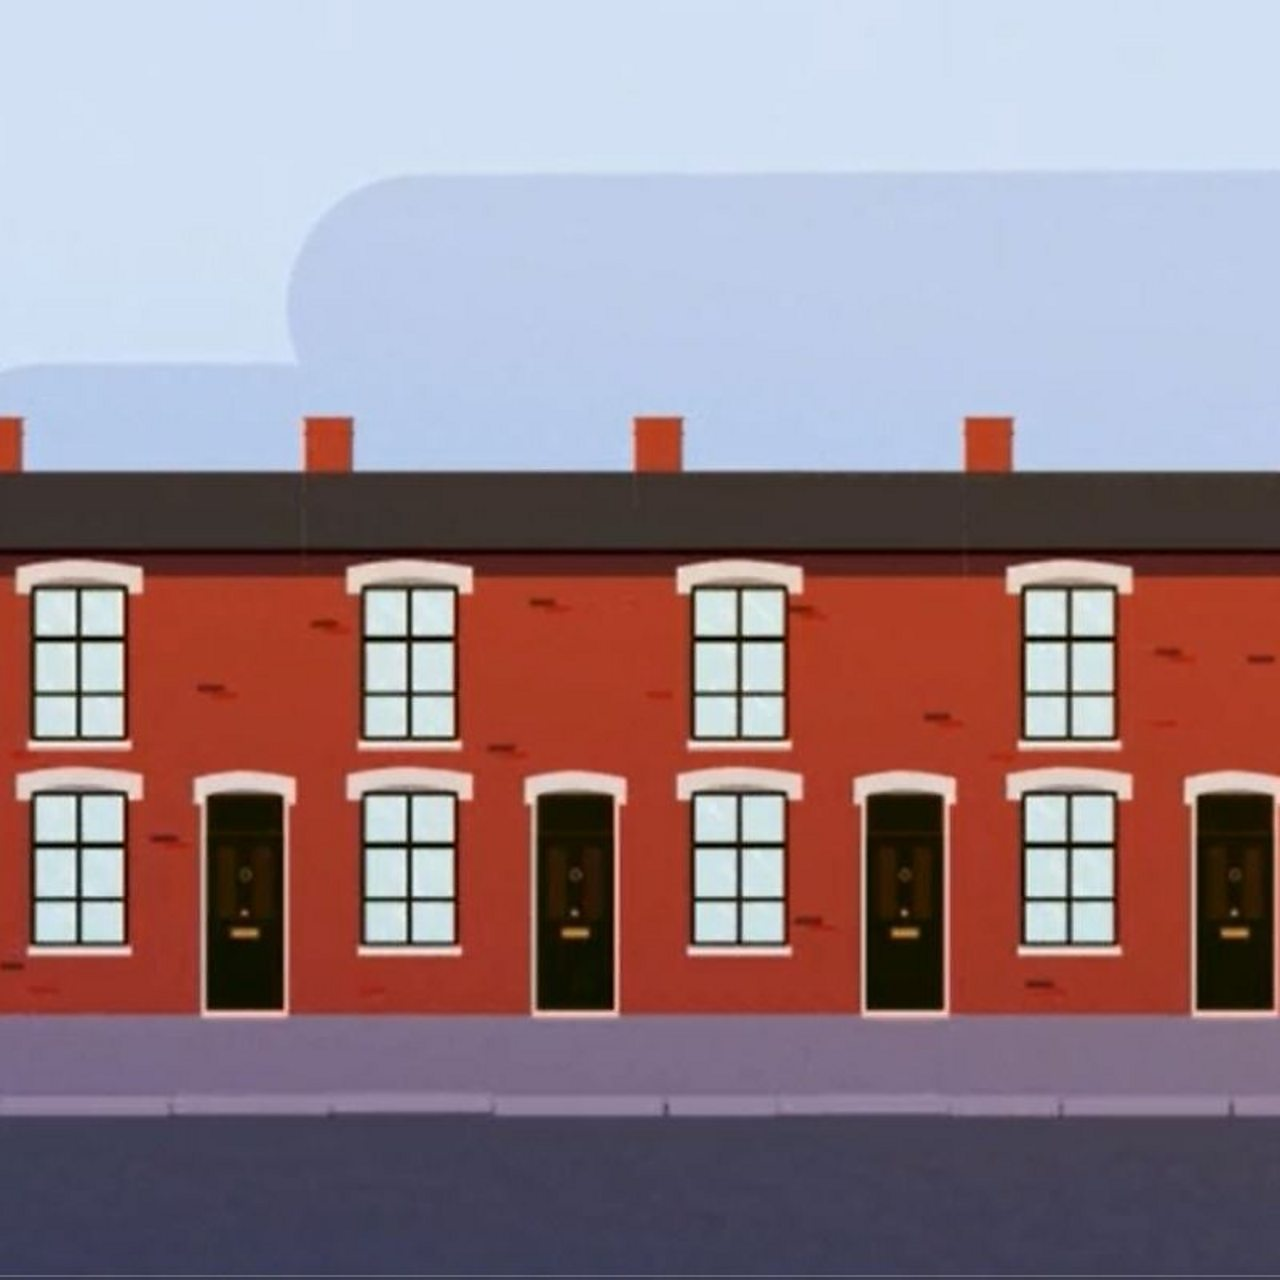 Animated image of a row of terraced houses